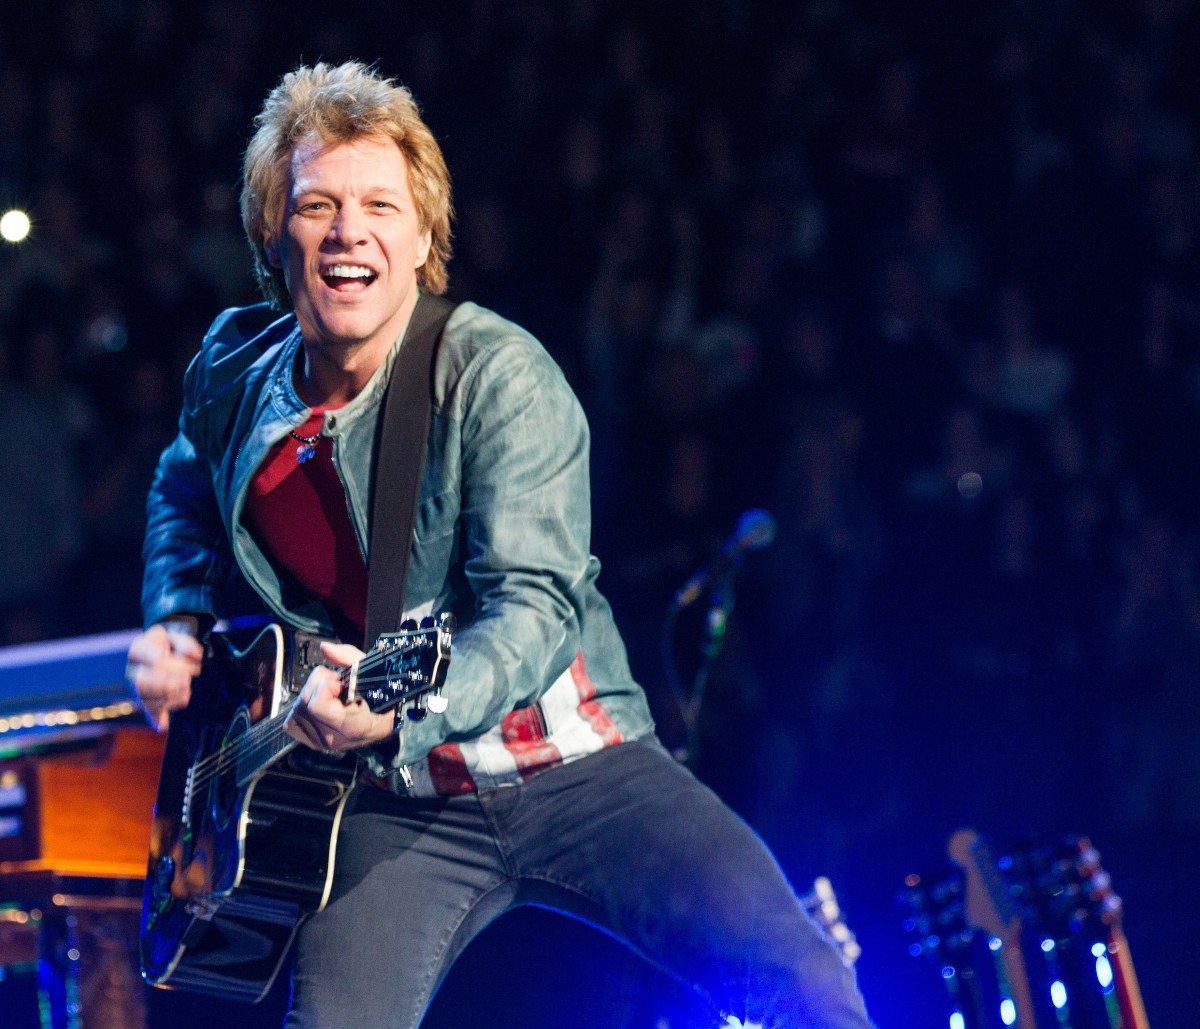 Jon Bon Jovi Photo by Michael Zorn/Getty Images